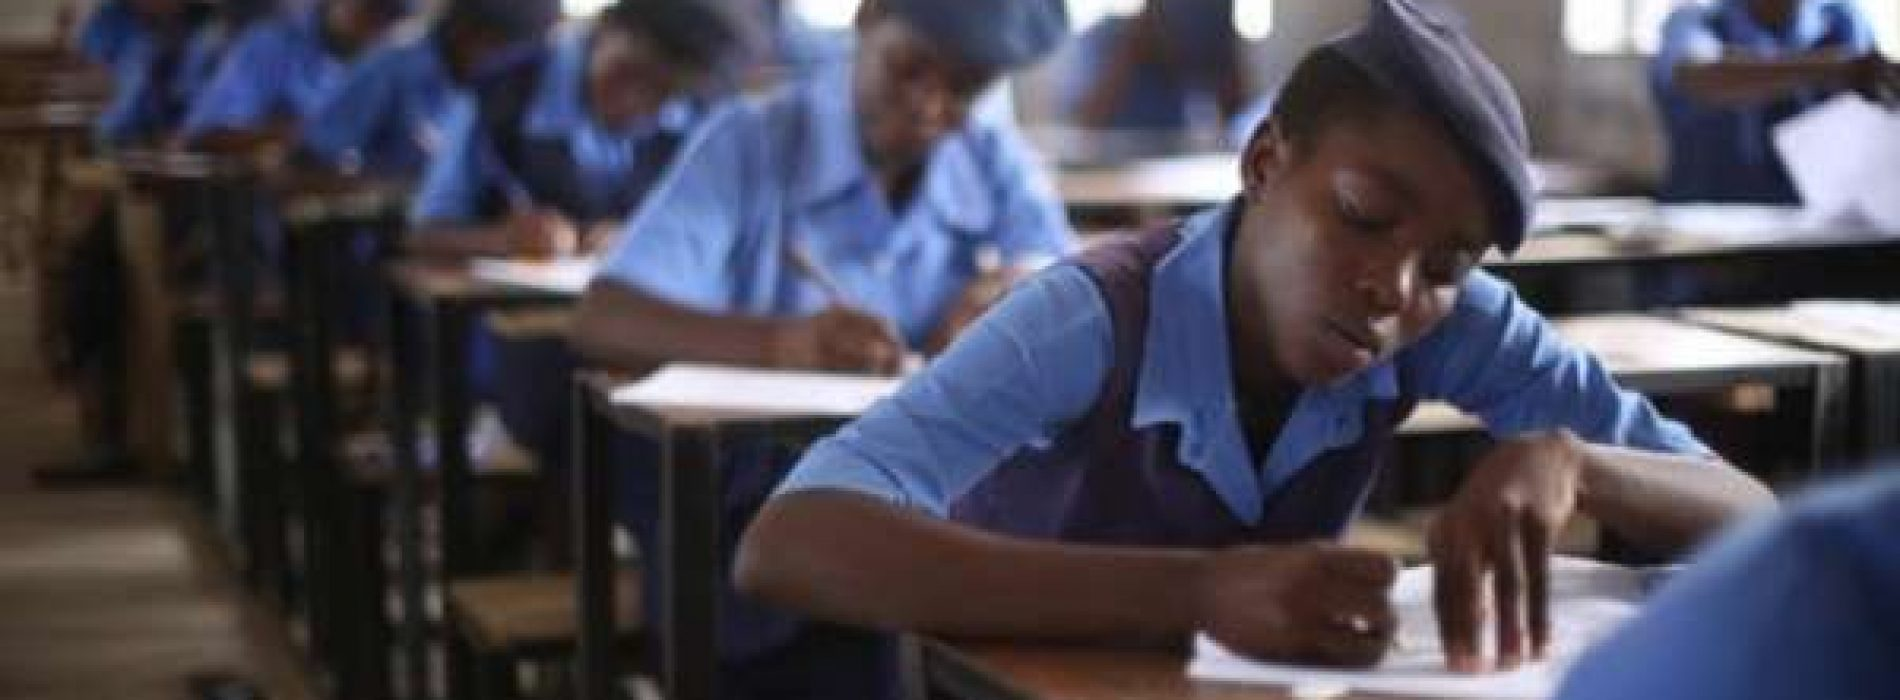 Students may fail to sit for exams